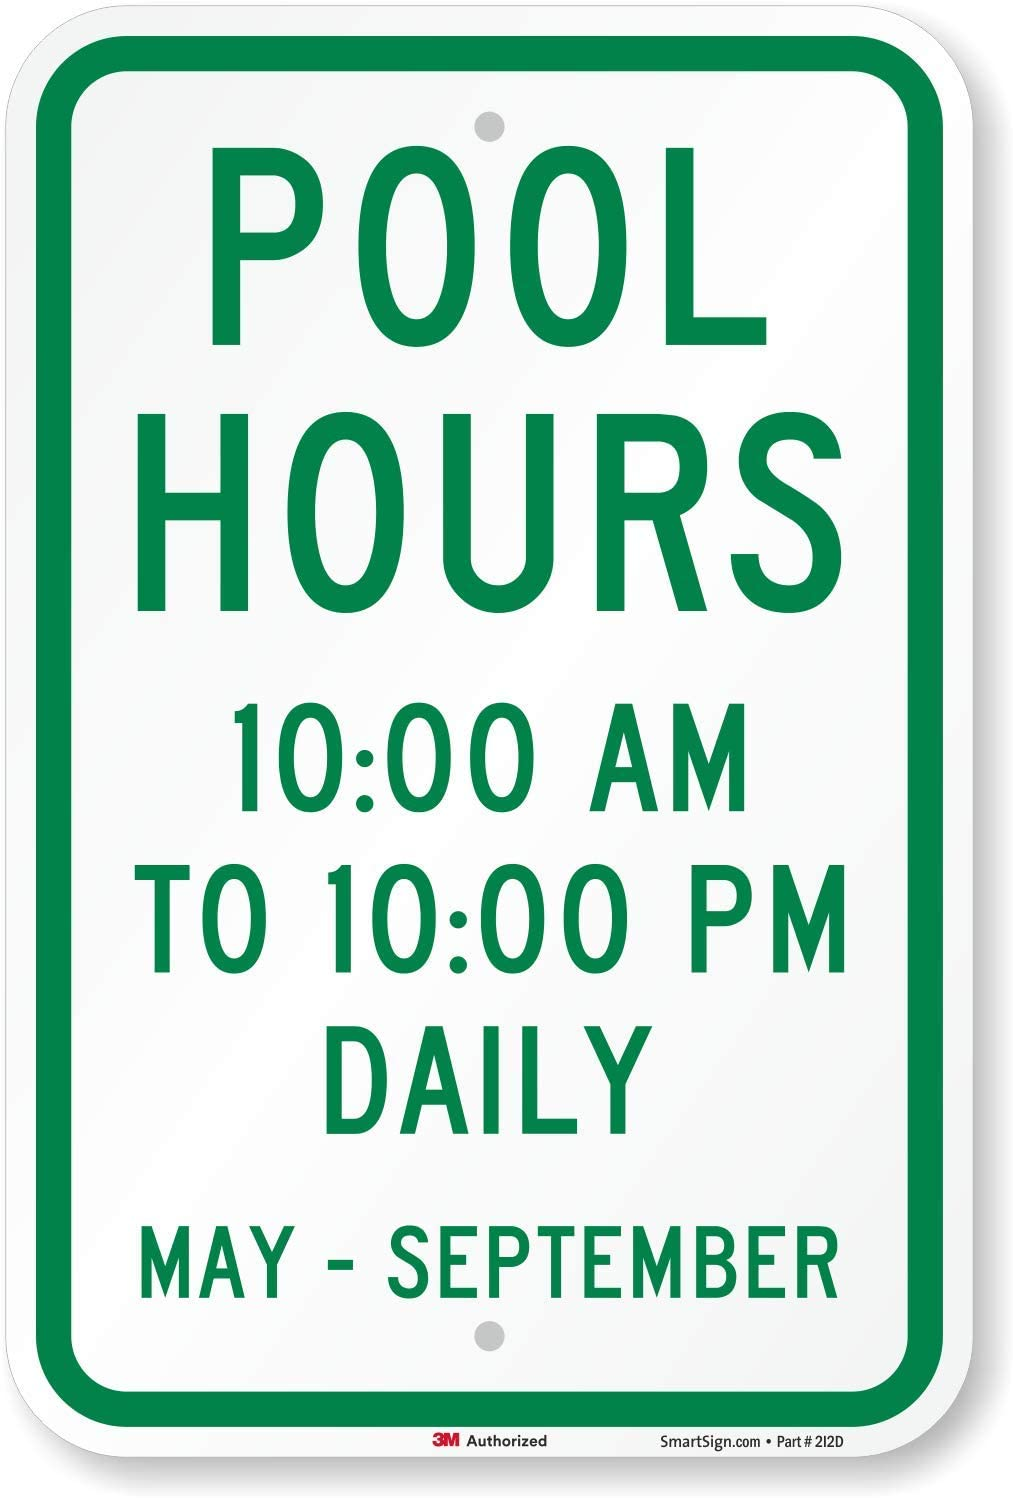 Pool Hours 10:00AM to 10:00PM Daily 18 x 12 May-September Sign